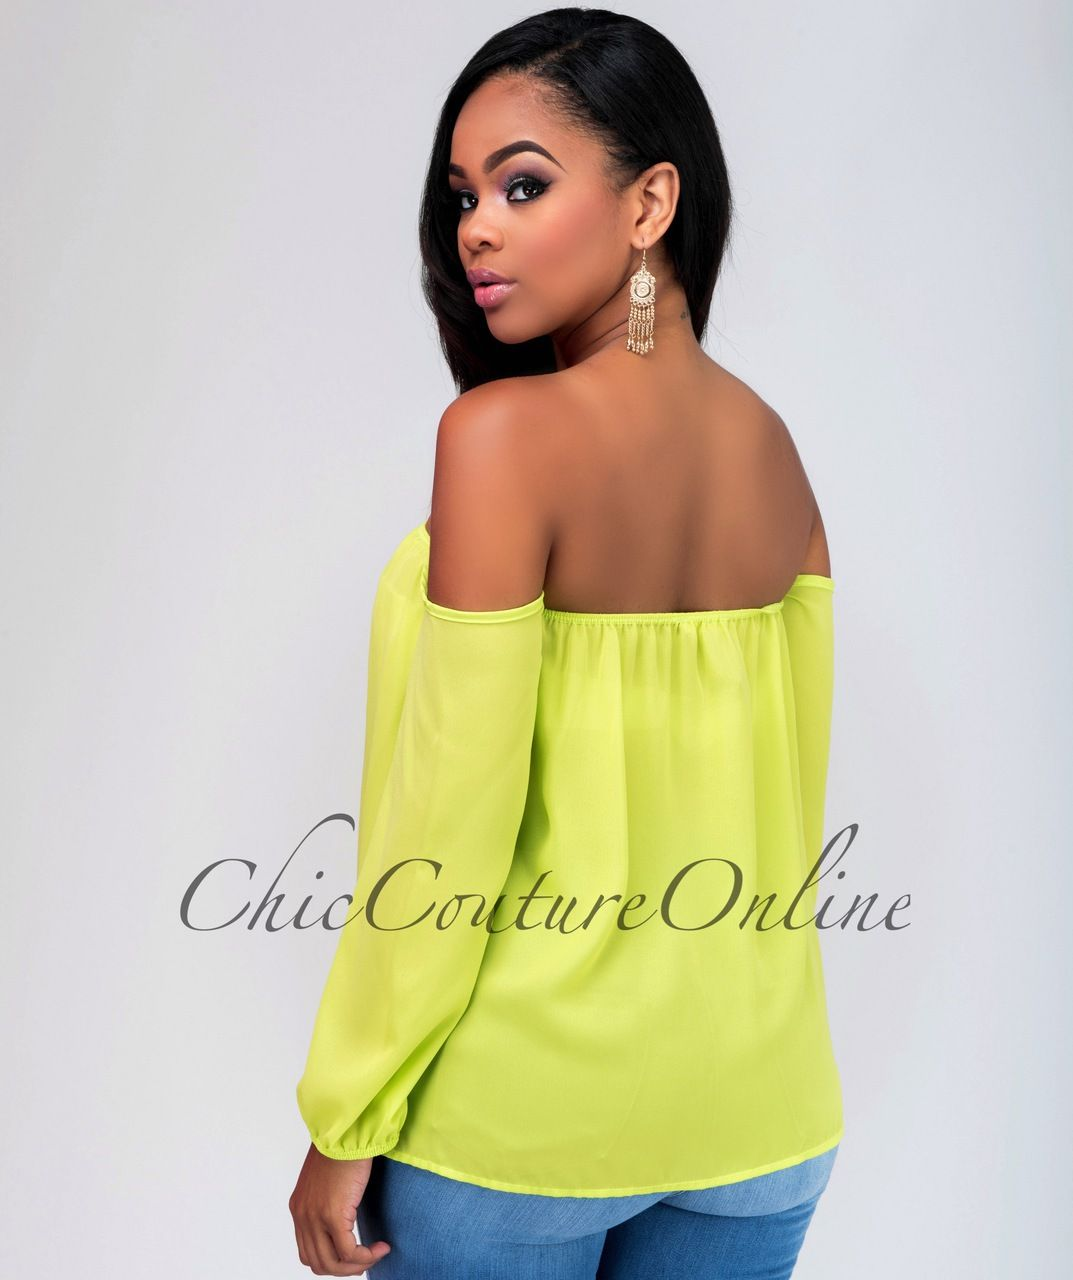 Chic Couture Online - Isadora Lime Green Off-The-Shoulder Top. (http://www.chiccoutureonline.com/isadora-lime-green-off-the-shoulder-top/)